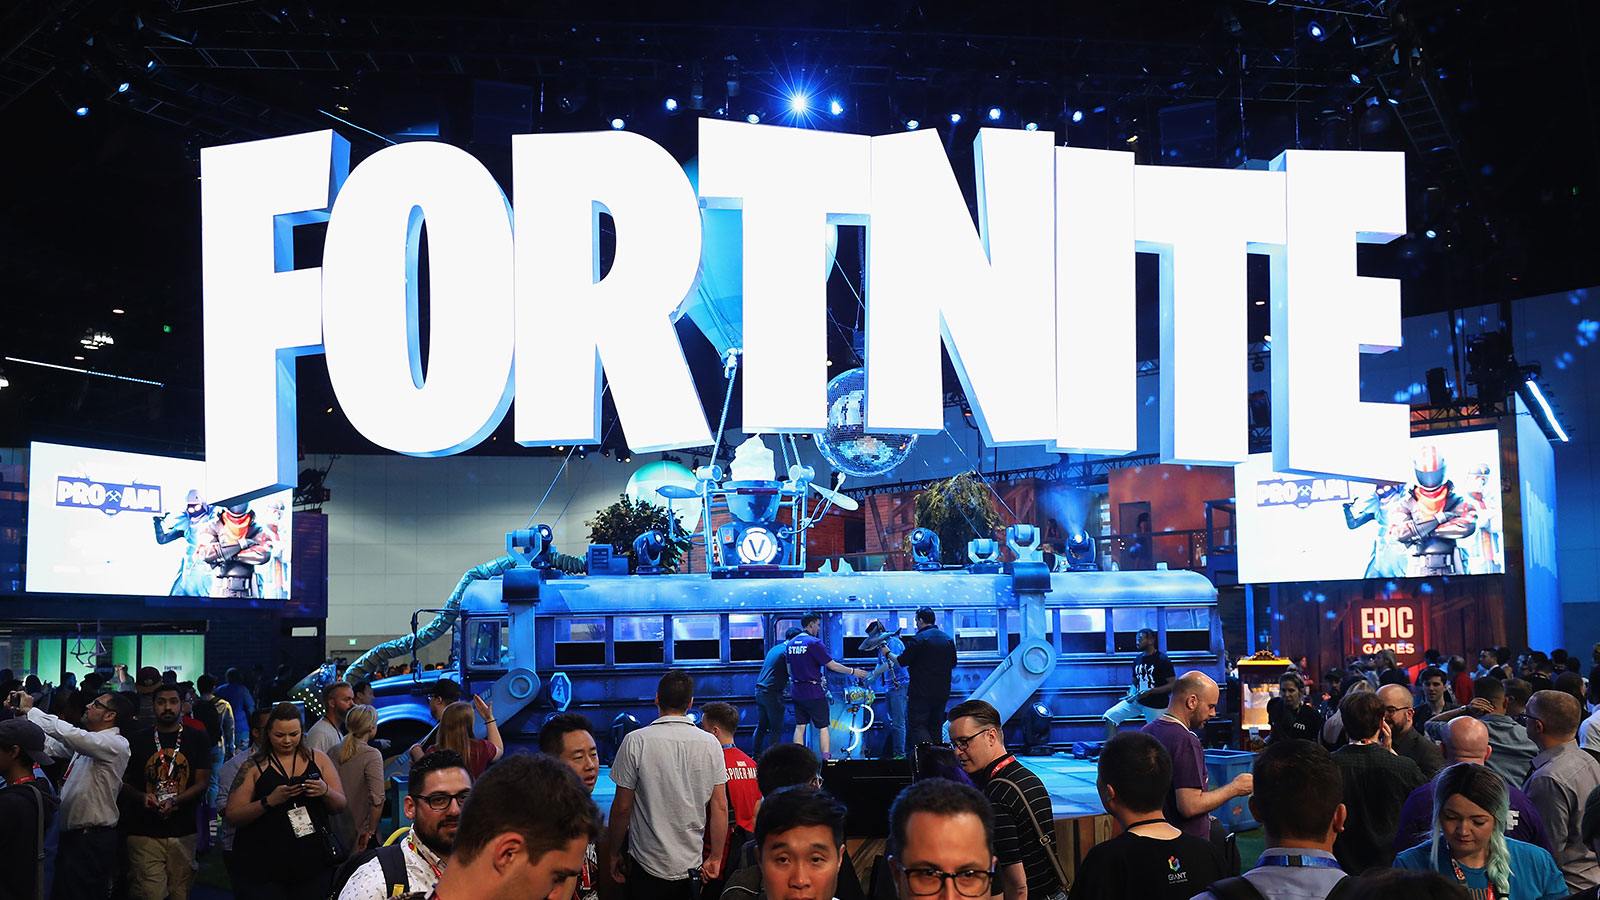 Noob or Not? How Much Do You Know About Fortnite?